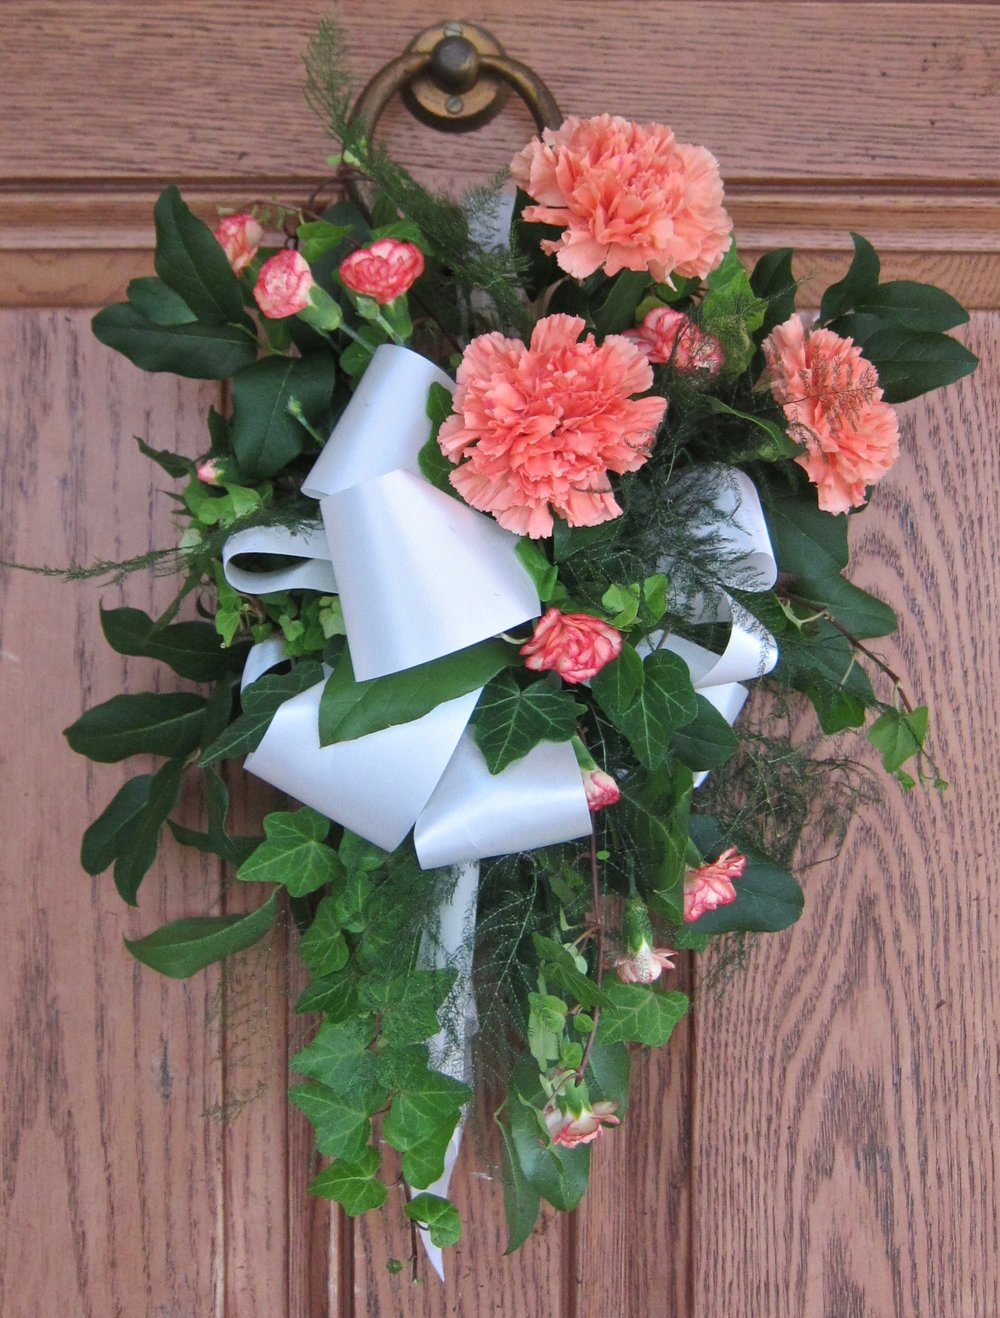 PEW BOUQUET   Mini and large carnations with ivy and ferns.